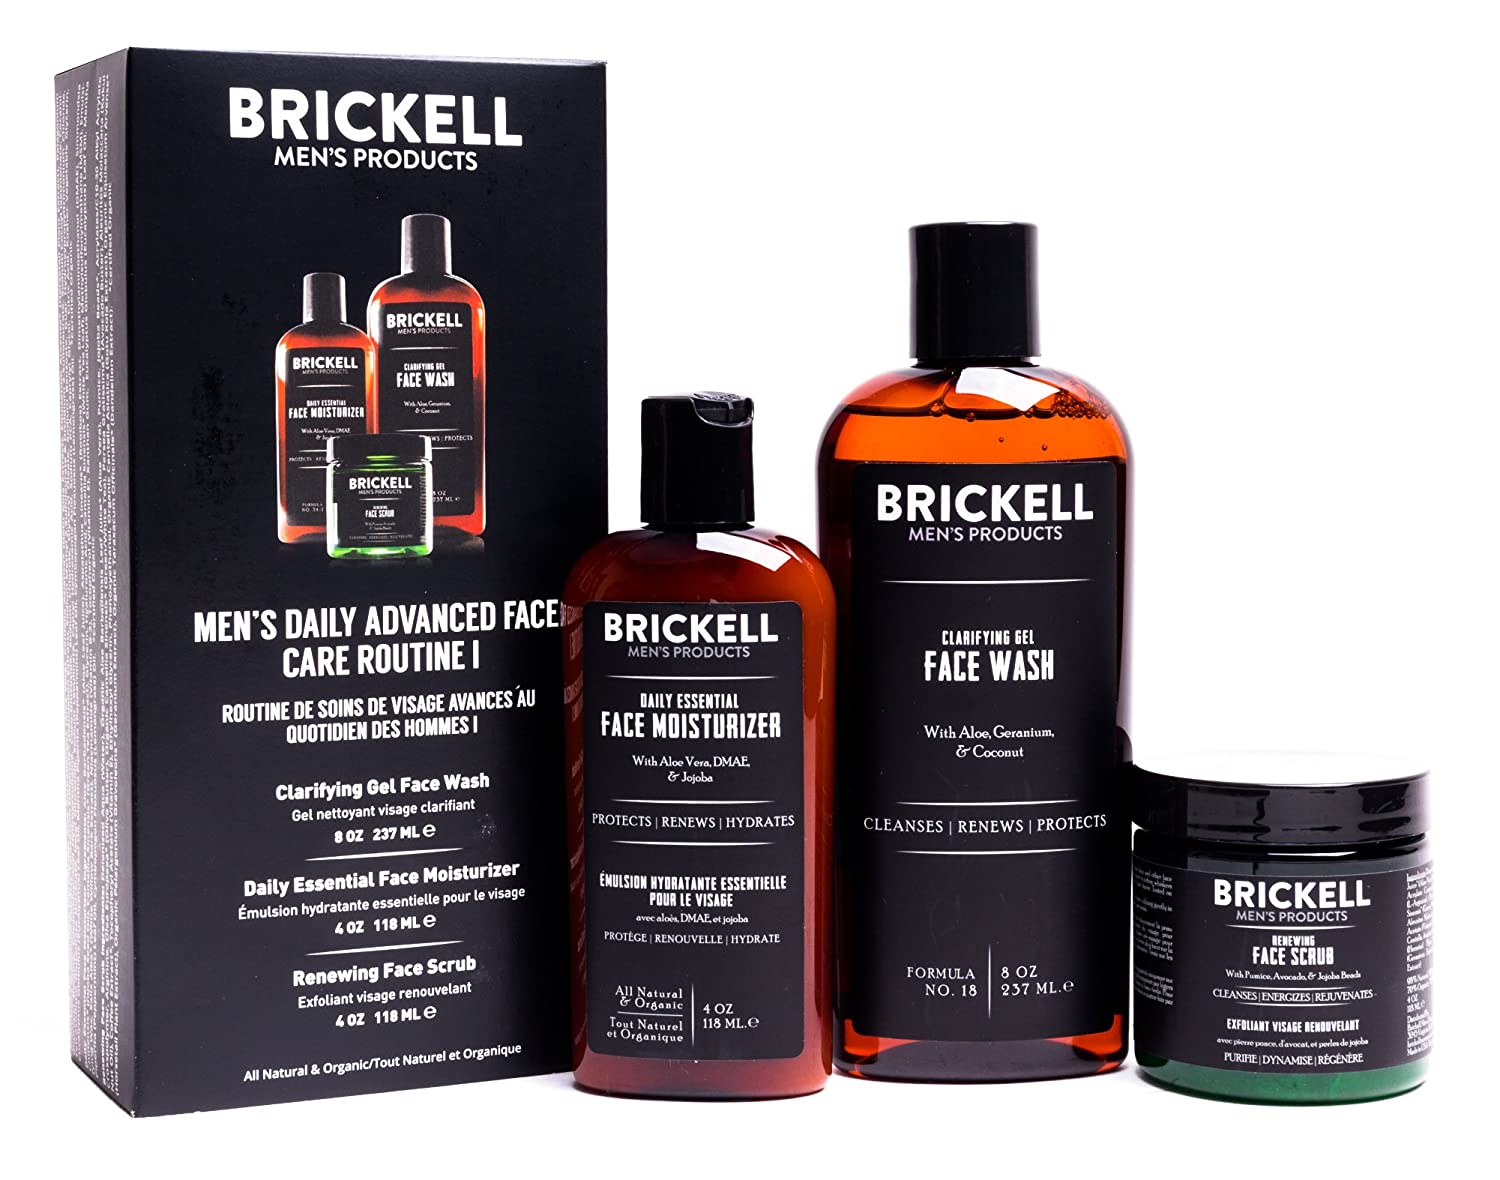 Brickell Men's Daily Advanced Face Care Routine I - Gel Facial Cleanser Wash + Face Scrub + Face Moisturizer Lotion - Natural & Organic Brickell Men's Products